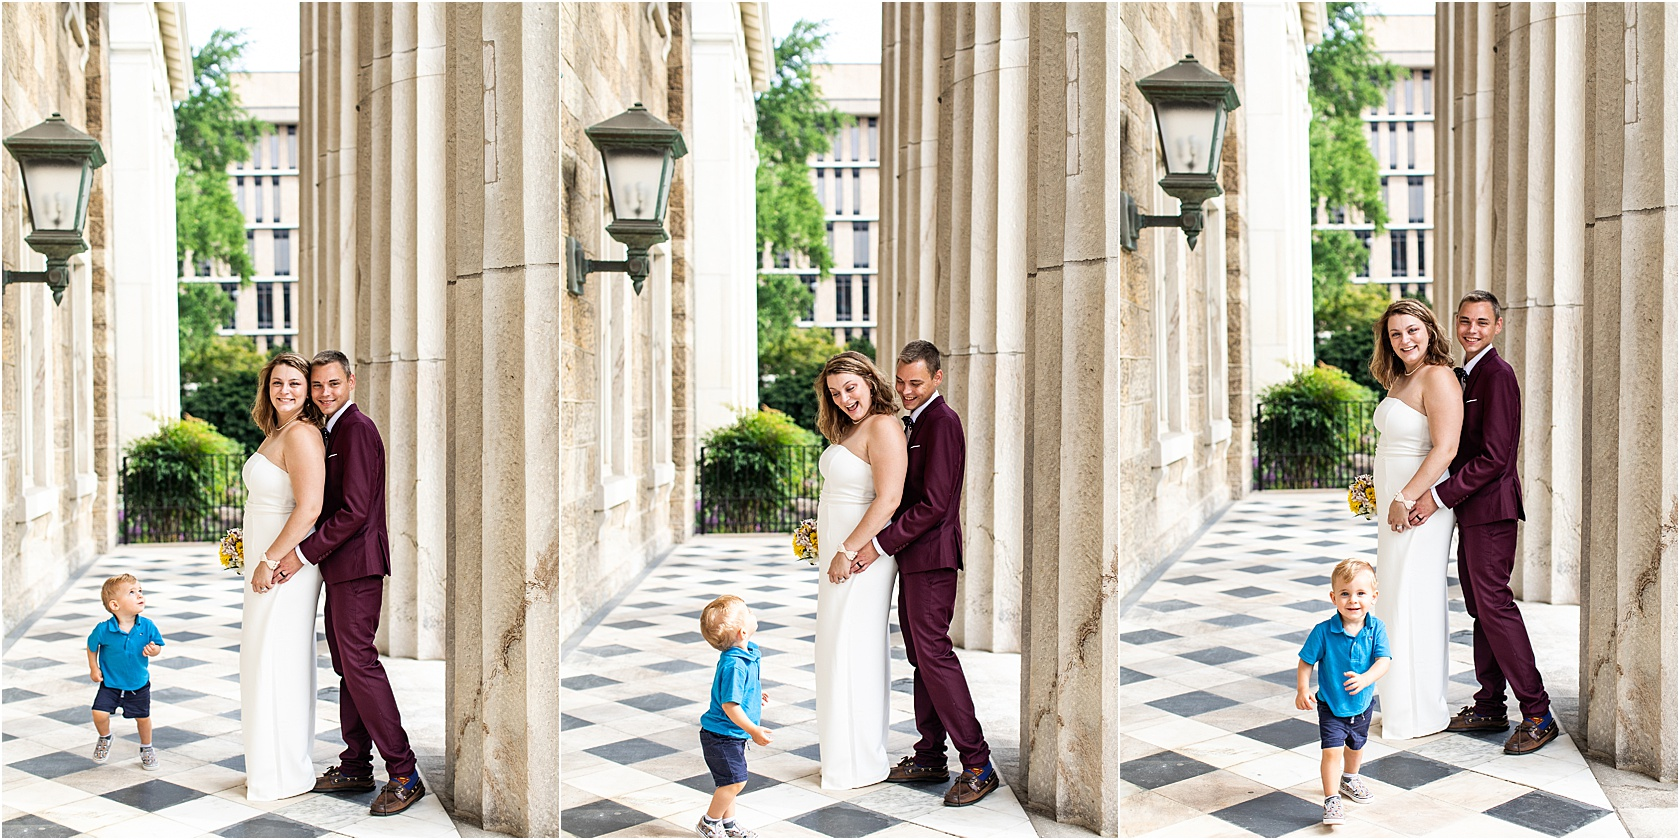 Oh, that time we brought our kid to the elopement. Why, because it was spontaneous and last minute and we said yes if we could bring Zeke. He photobombed.